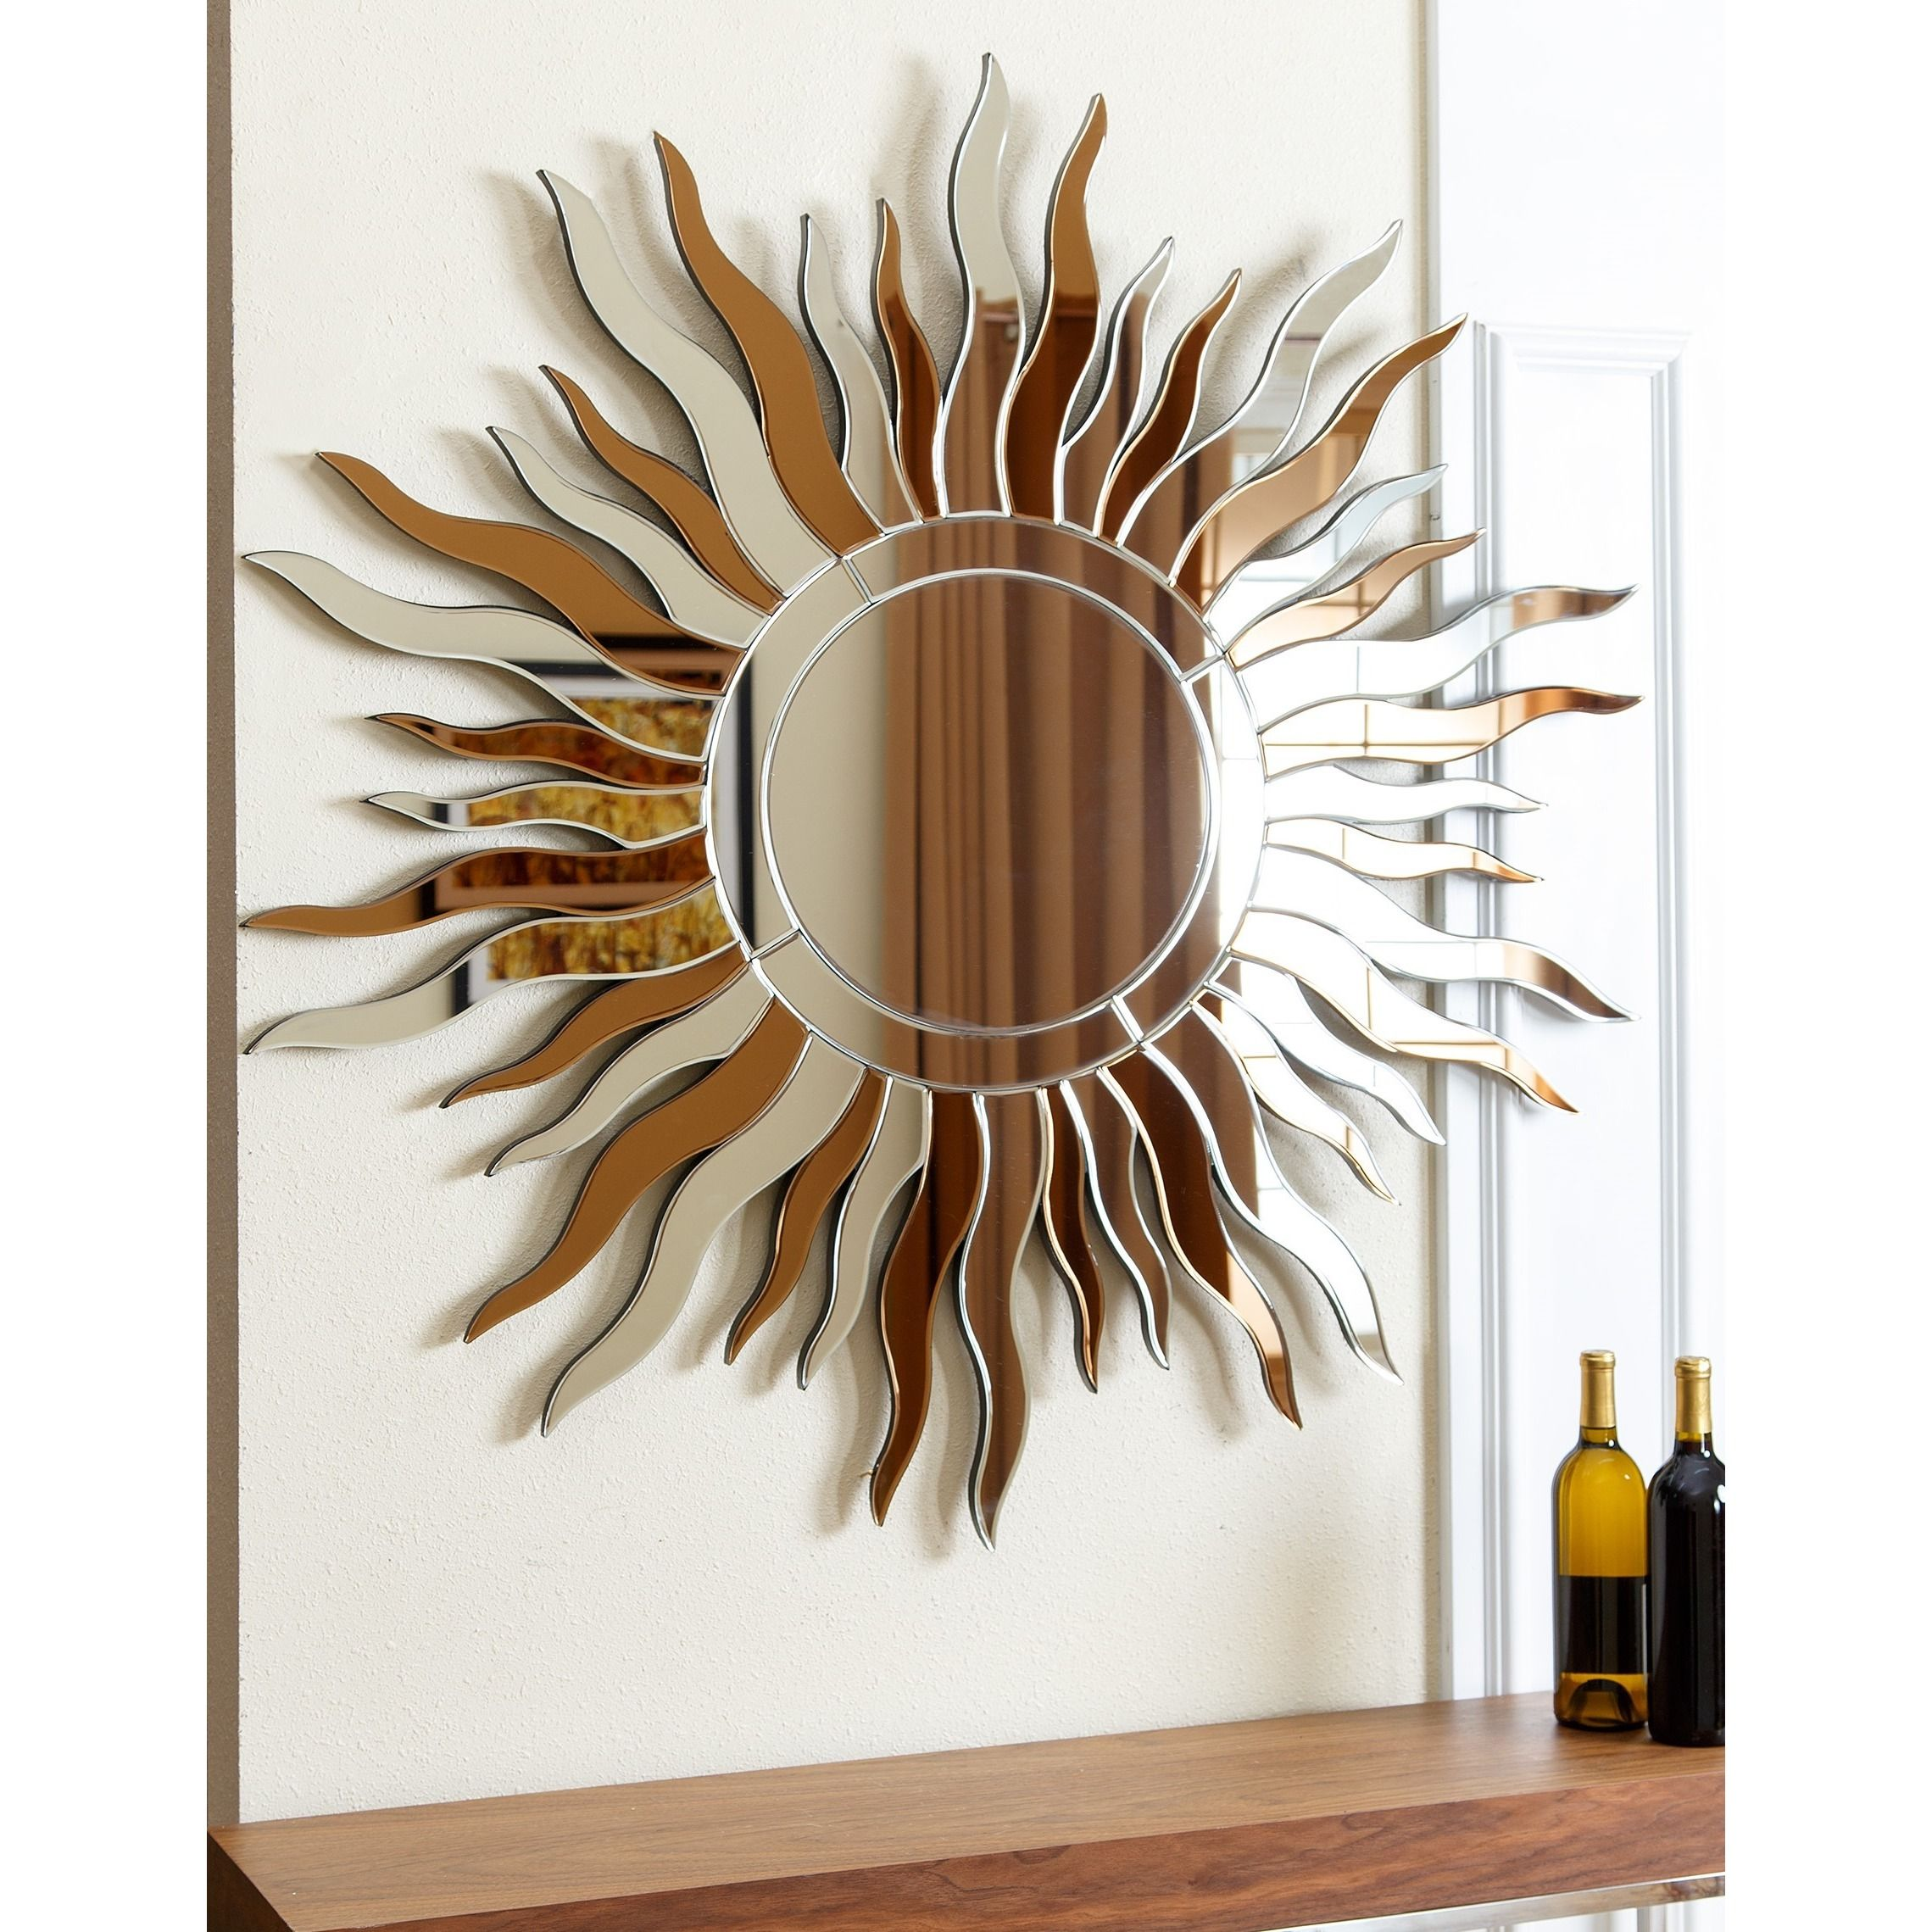 Hang this artistic wall mirror in the space of your choice to add hang this artistic wall mirror in the space of your choice to add a touch of amipublicfo Choice Image